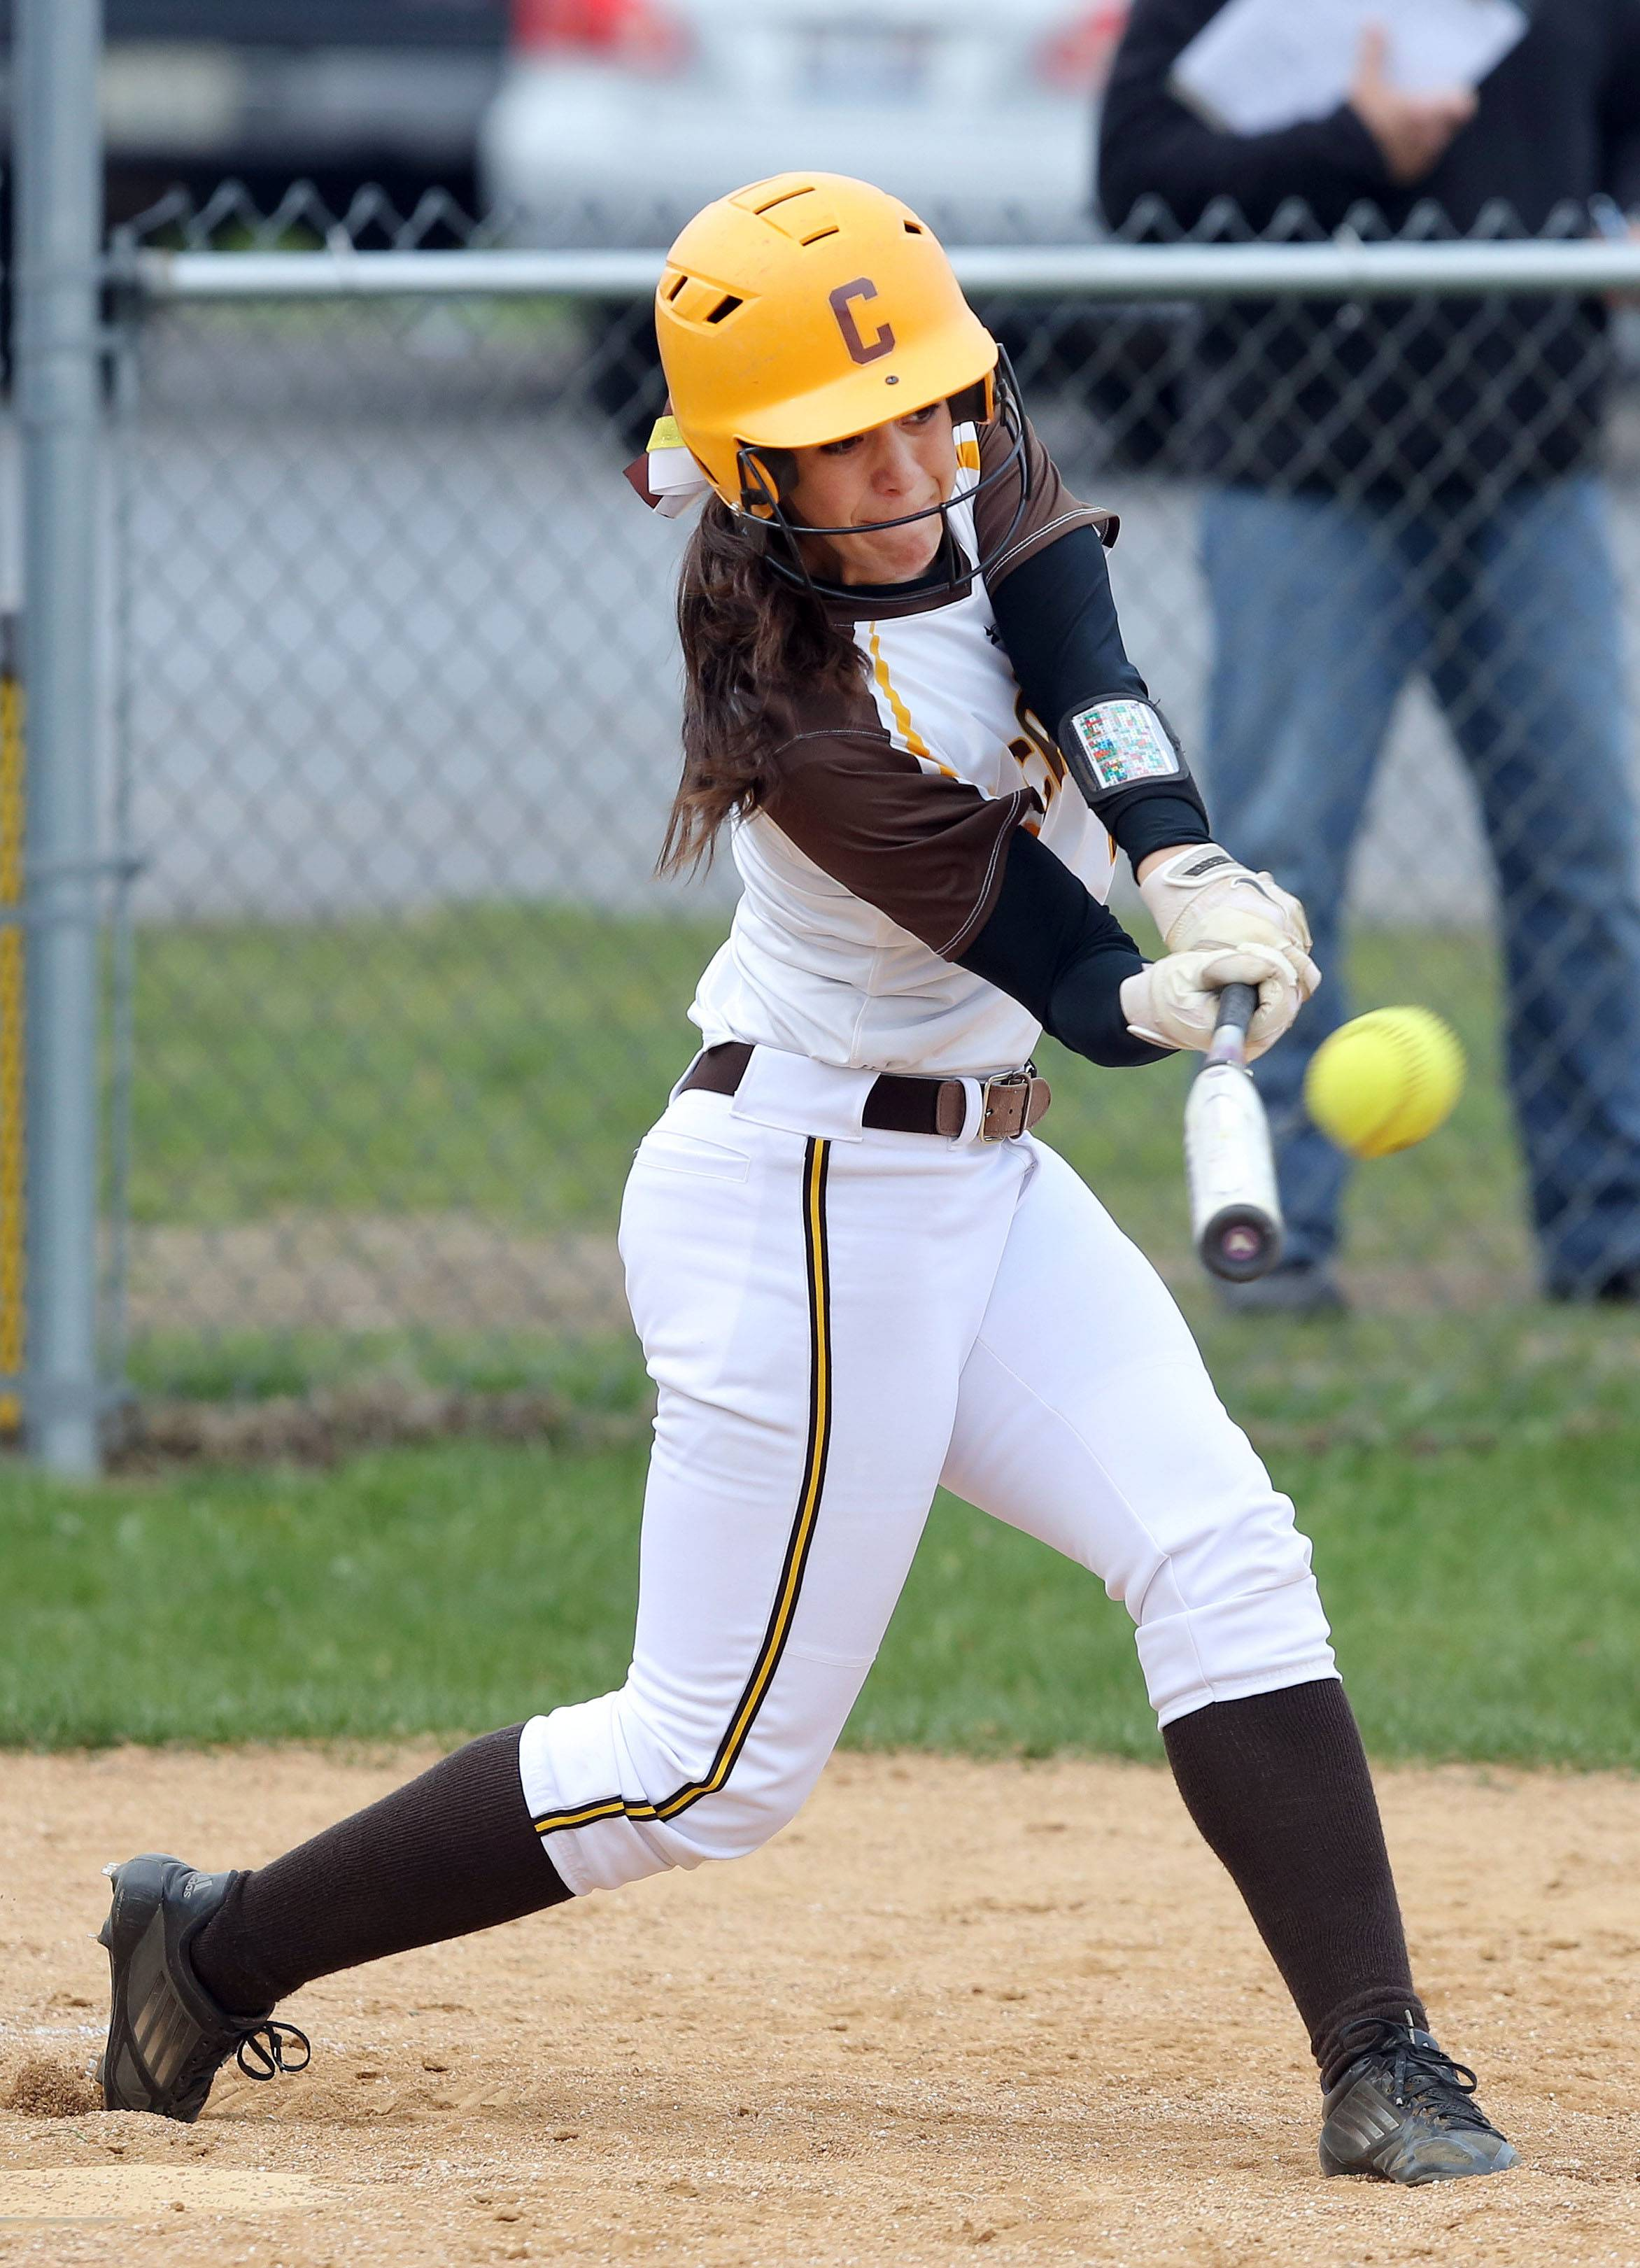 Carmel's Kathleen Felicelli connects for a 3-run homer against Nazareth during action this spring.